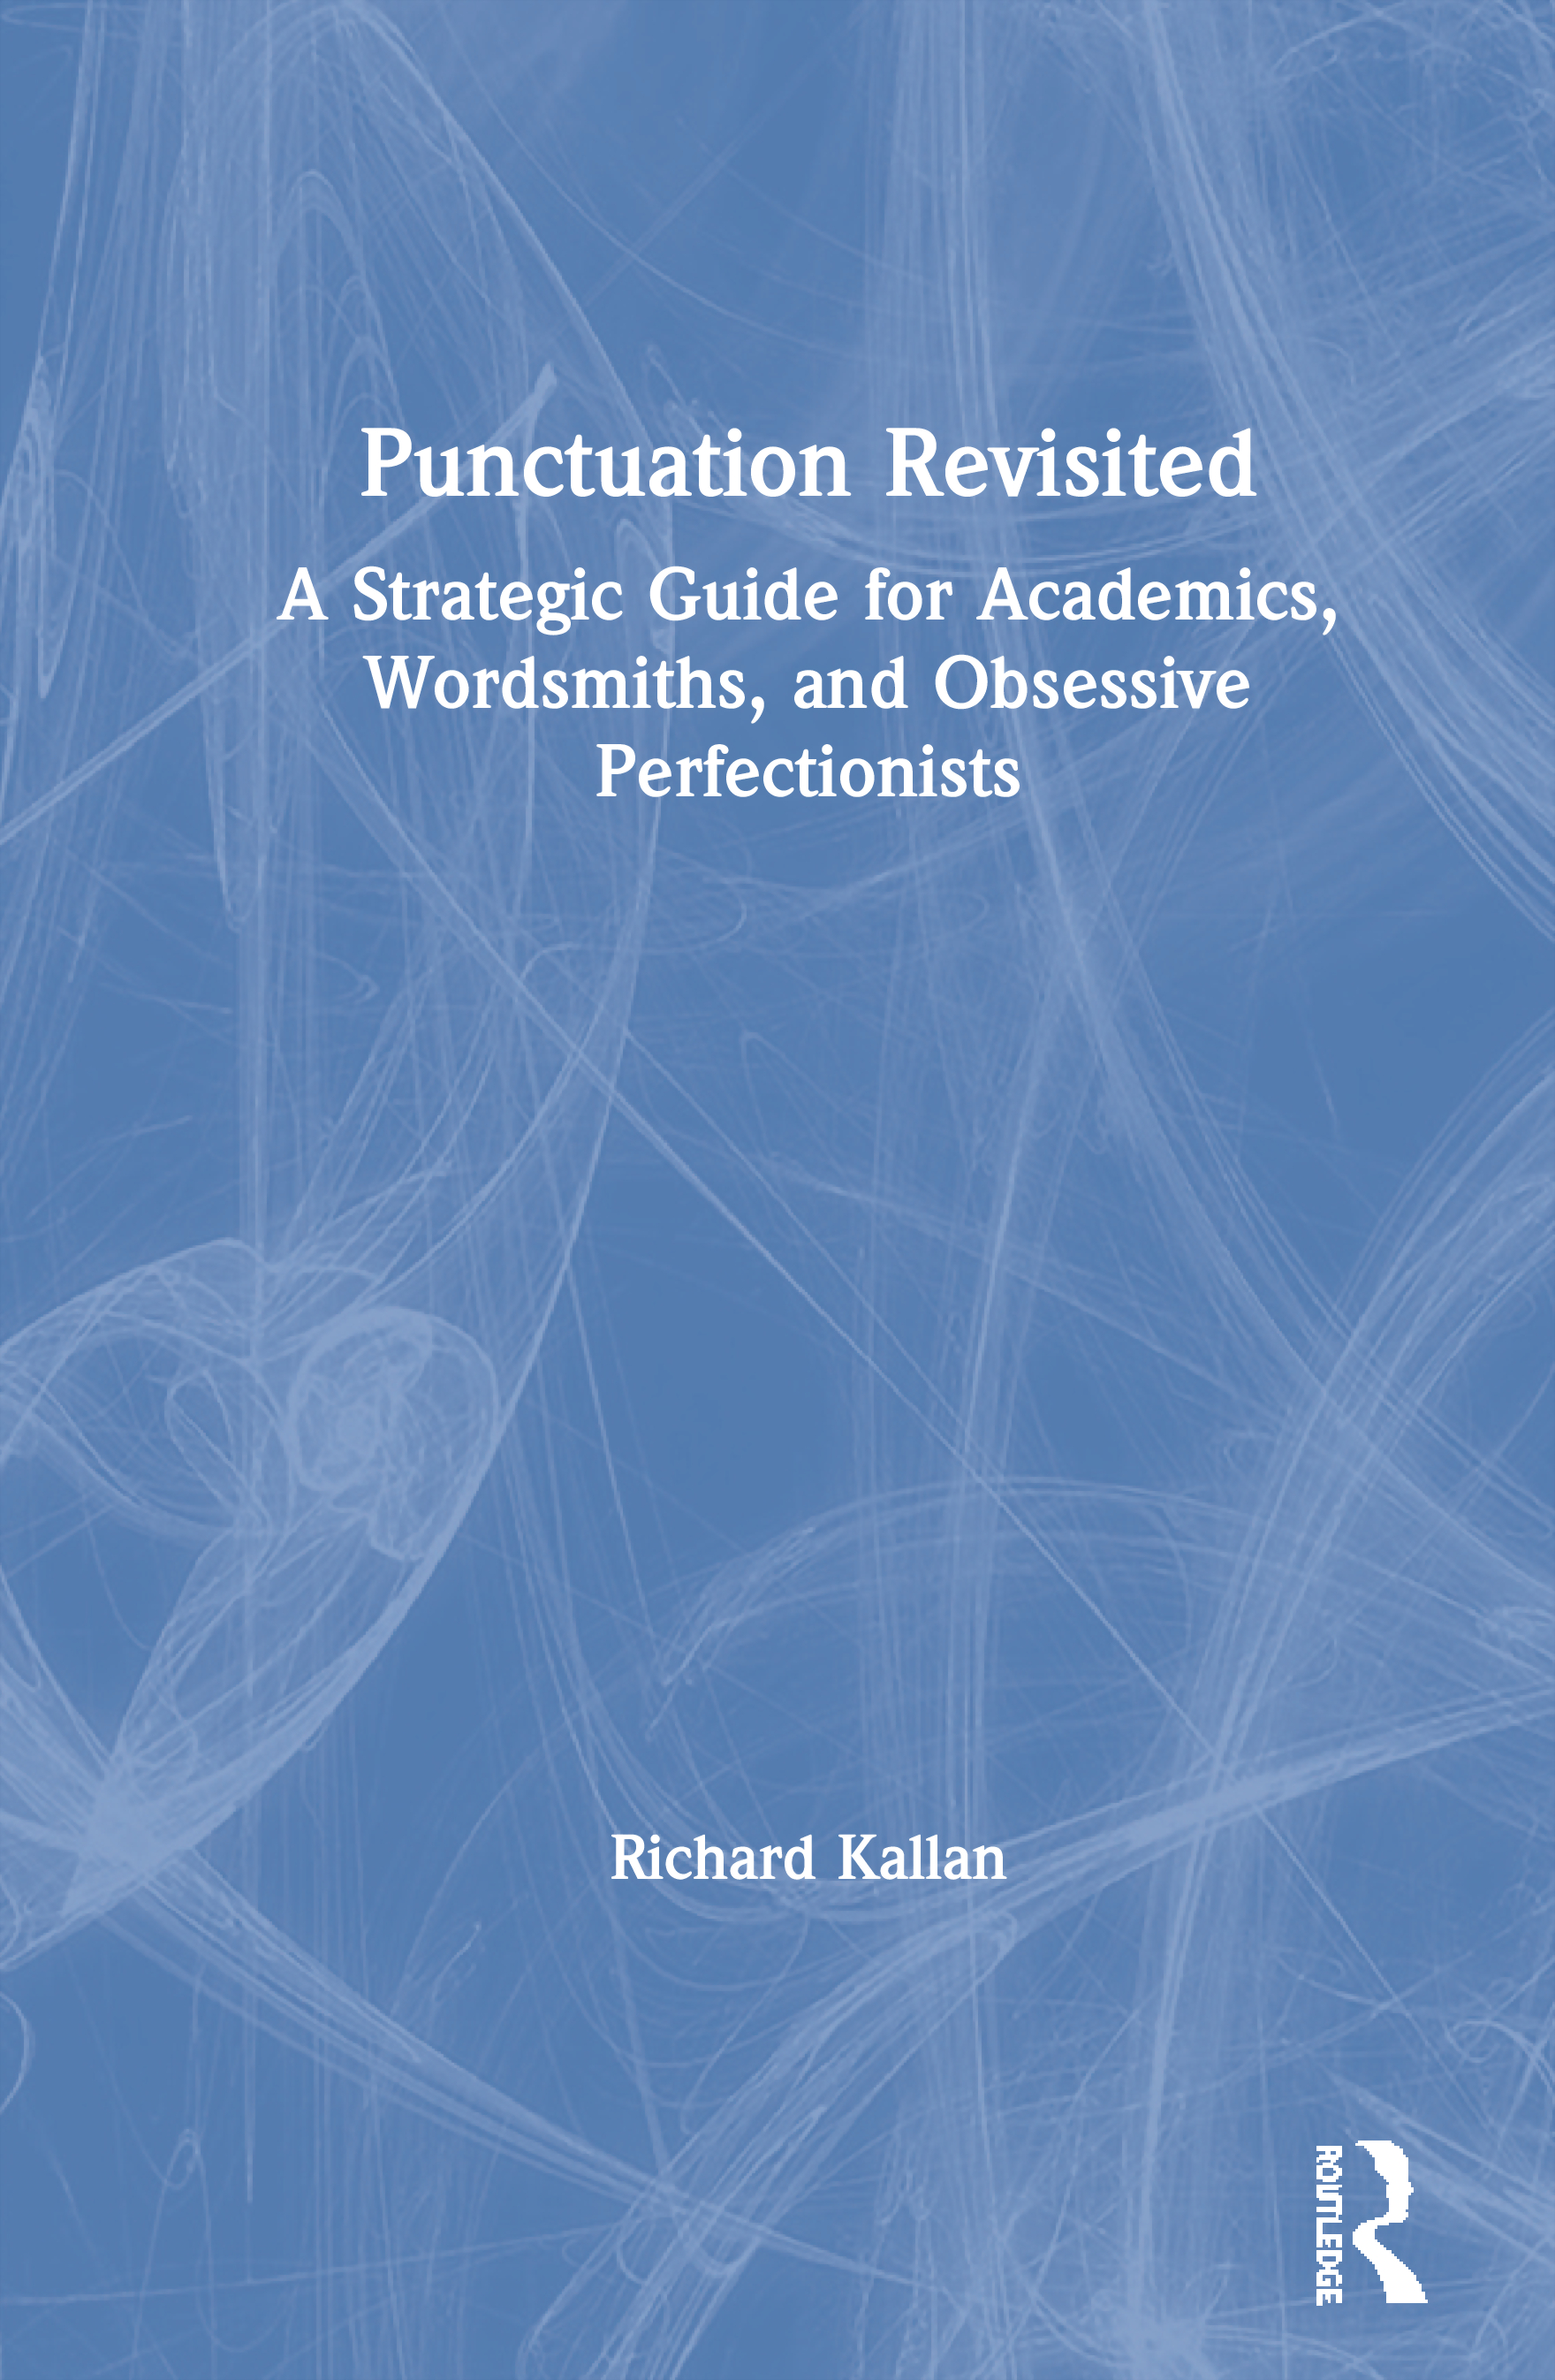 Punctuation Revisited: A Strategic Guide for Academics, Wordsmiths, and Obsessive Perfectionists book cover